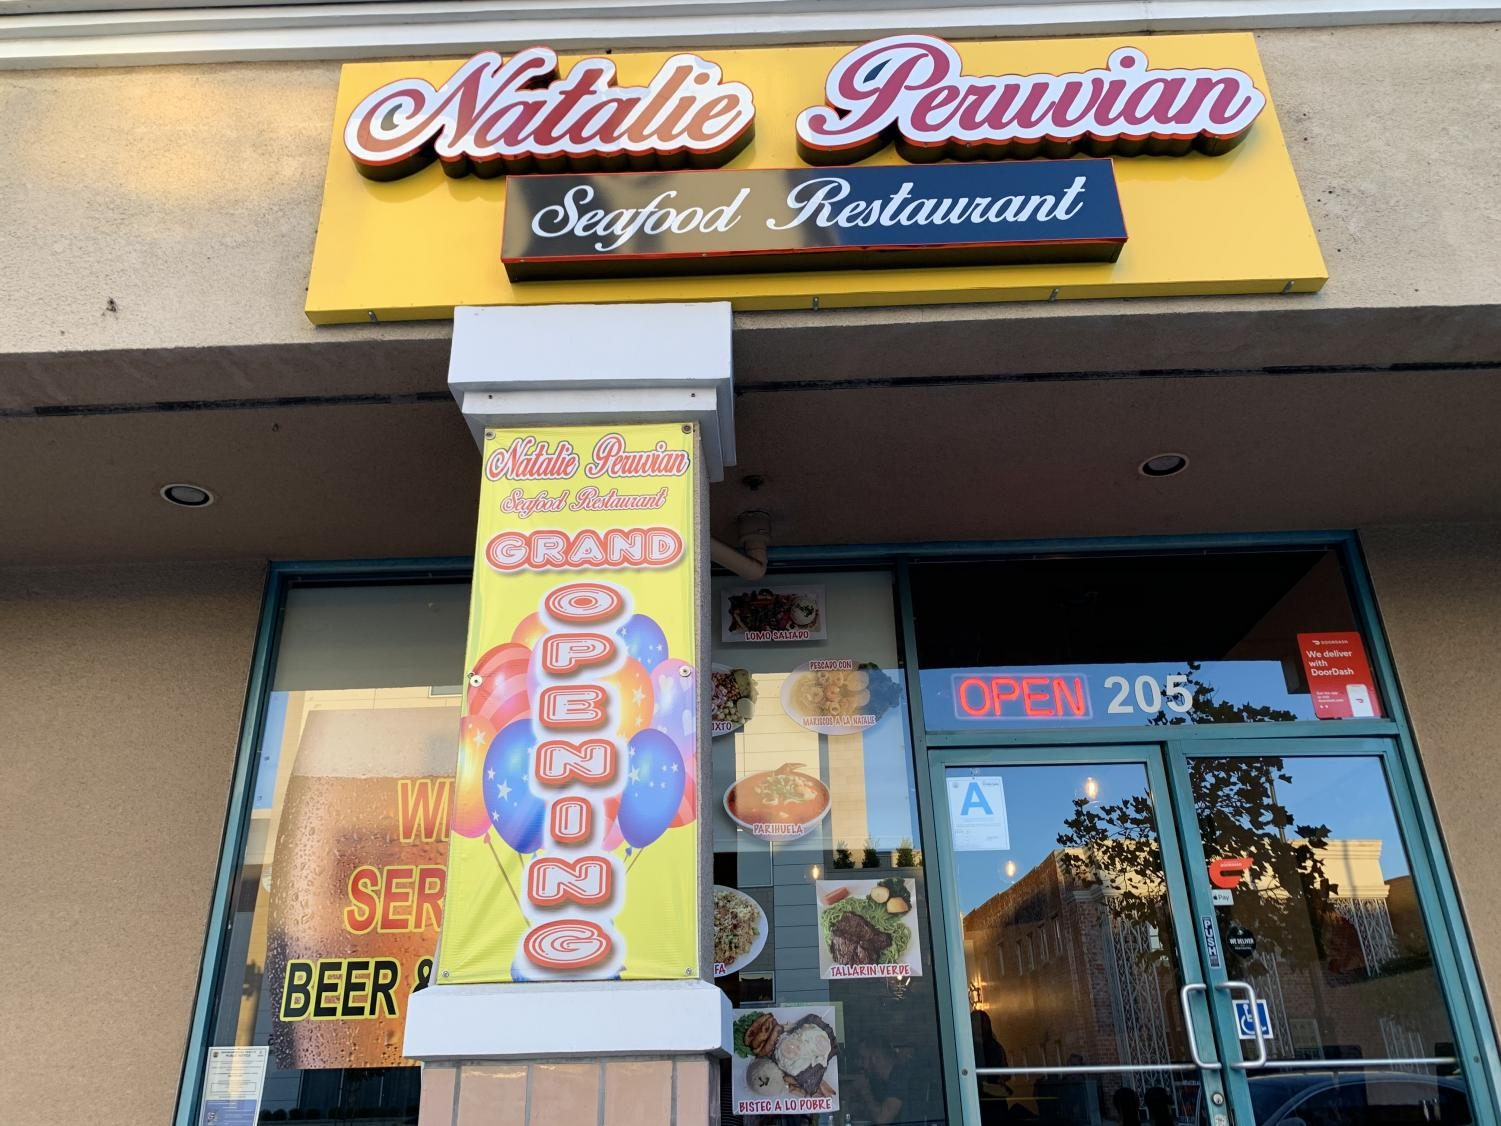 Natalie Peruvian Seafood Restaurant has just recently opened in Glendale, with a variety of delicious dishes to offer.